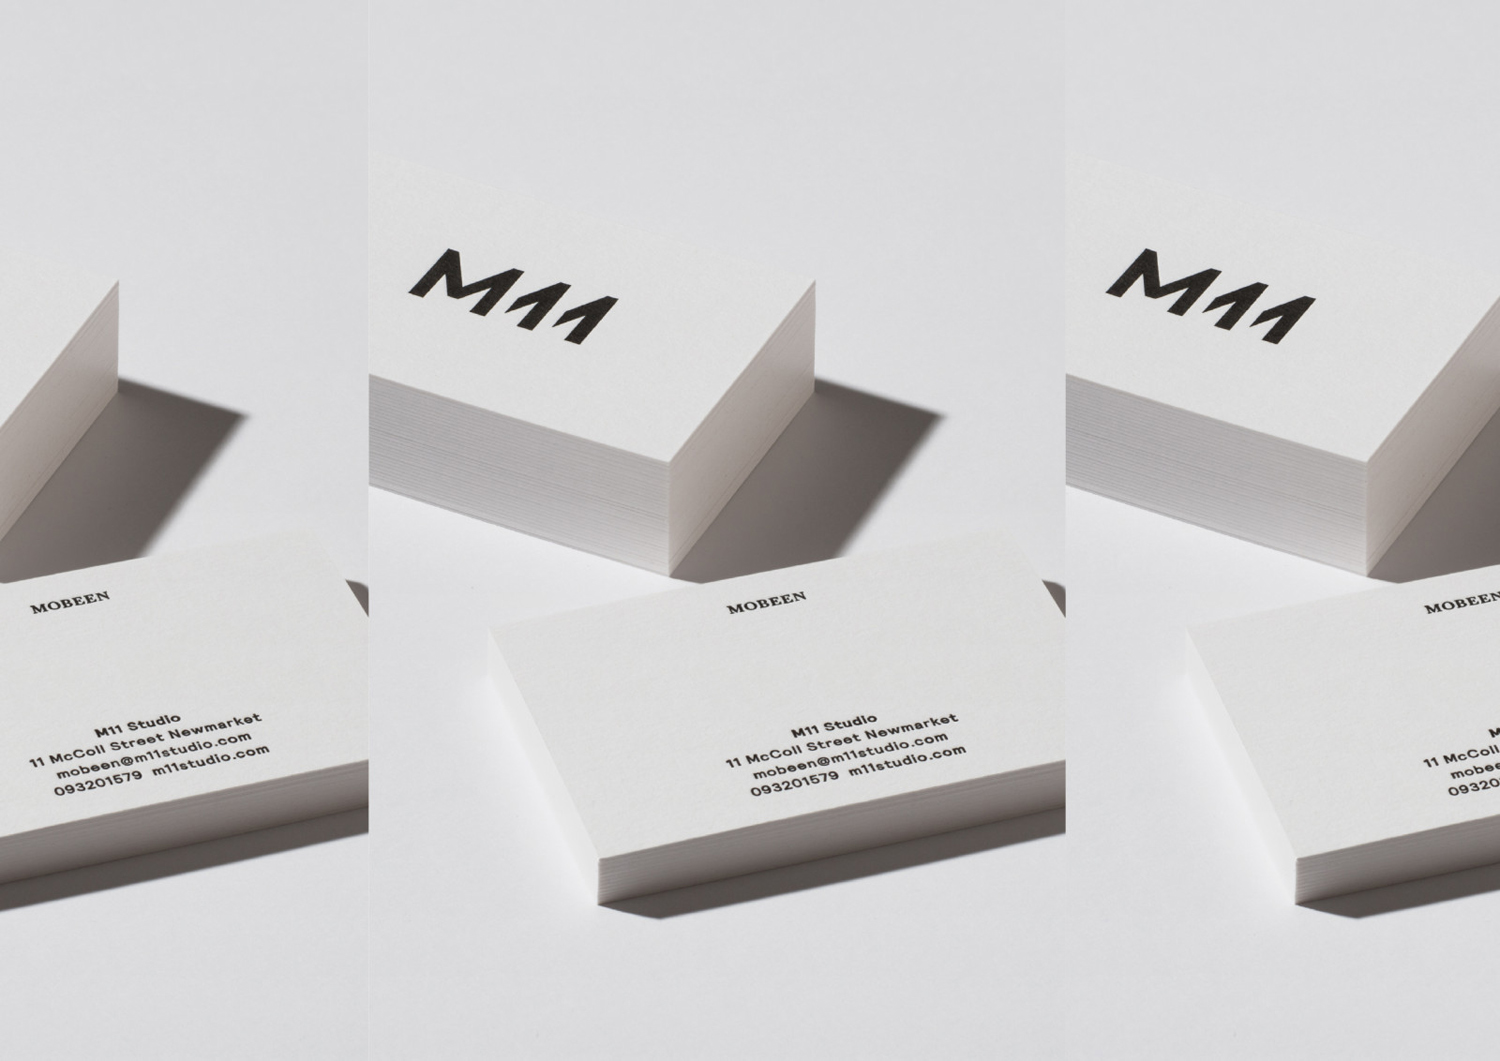 Brand identity and business cards for Auckland-based luxe salon M11 designed by Inhouse, New Zealand